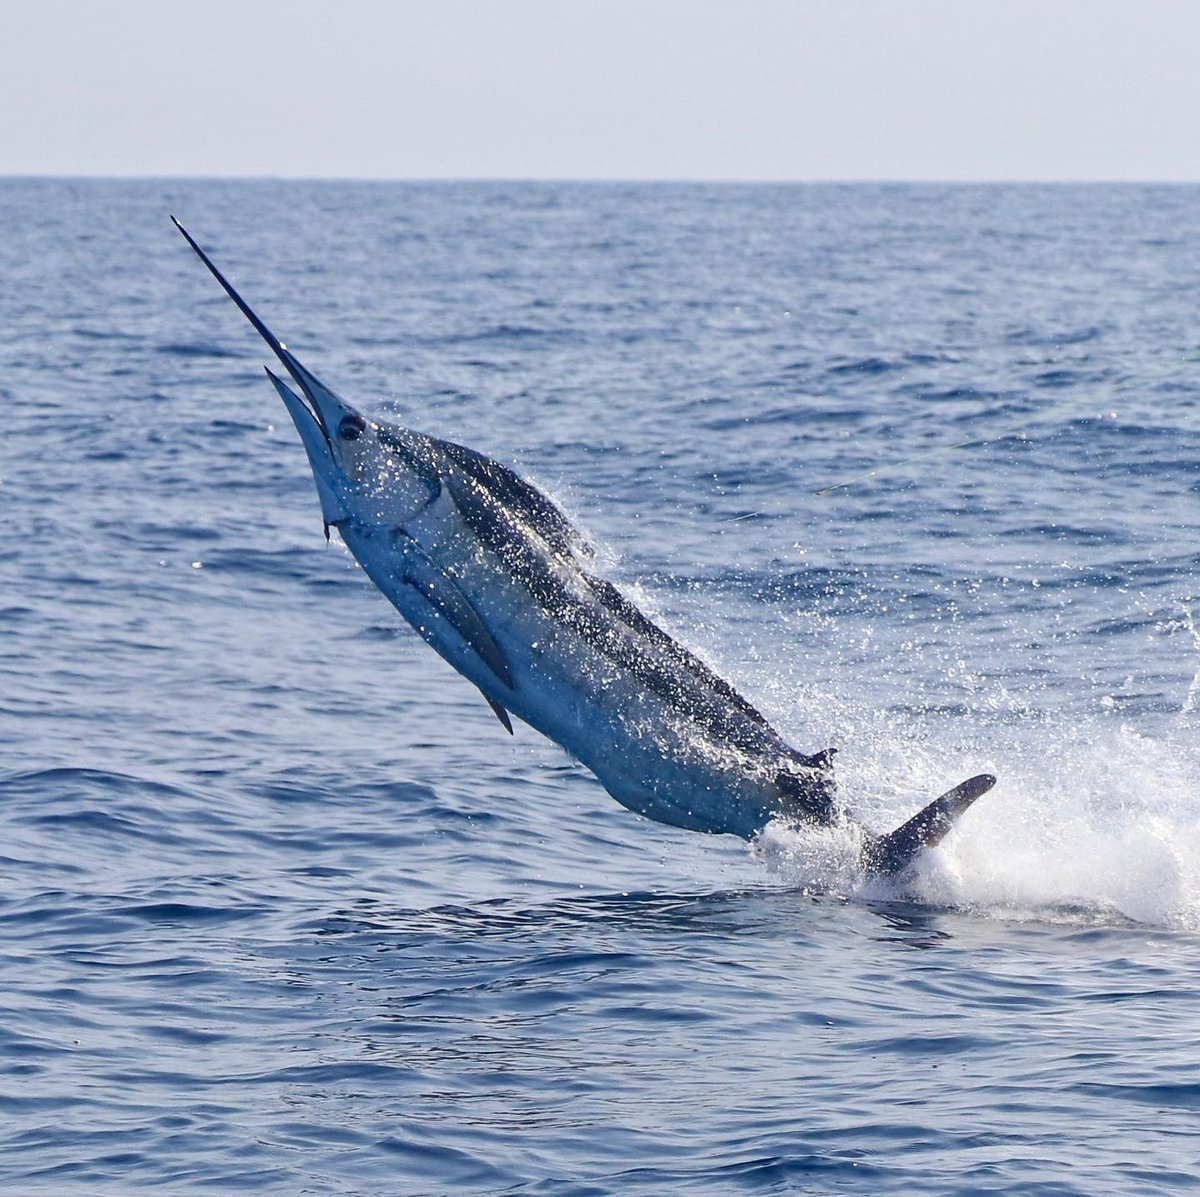 Guatemala - Both Intensity and Allure II released Blue Marlin on Fly (300).